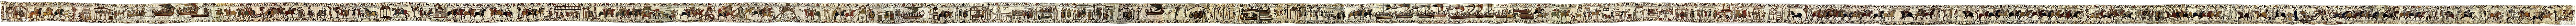 A extremely long embroidered cloth depicting events leading to the Norman conquest of England.